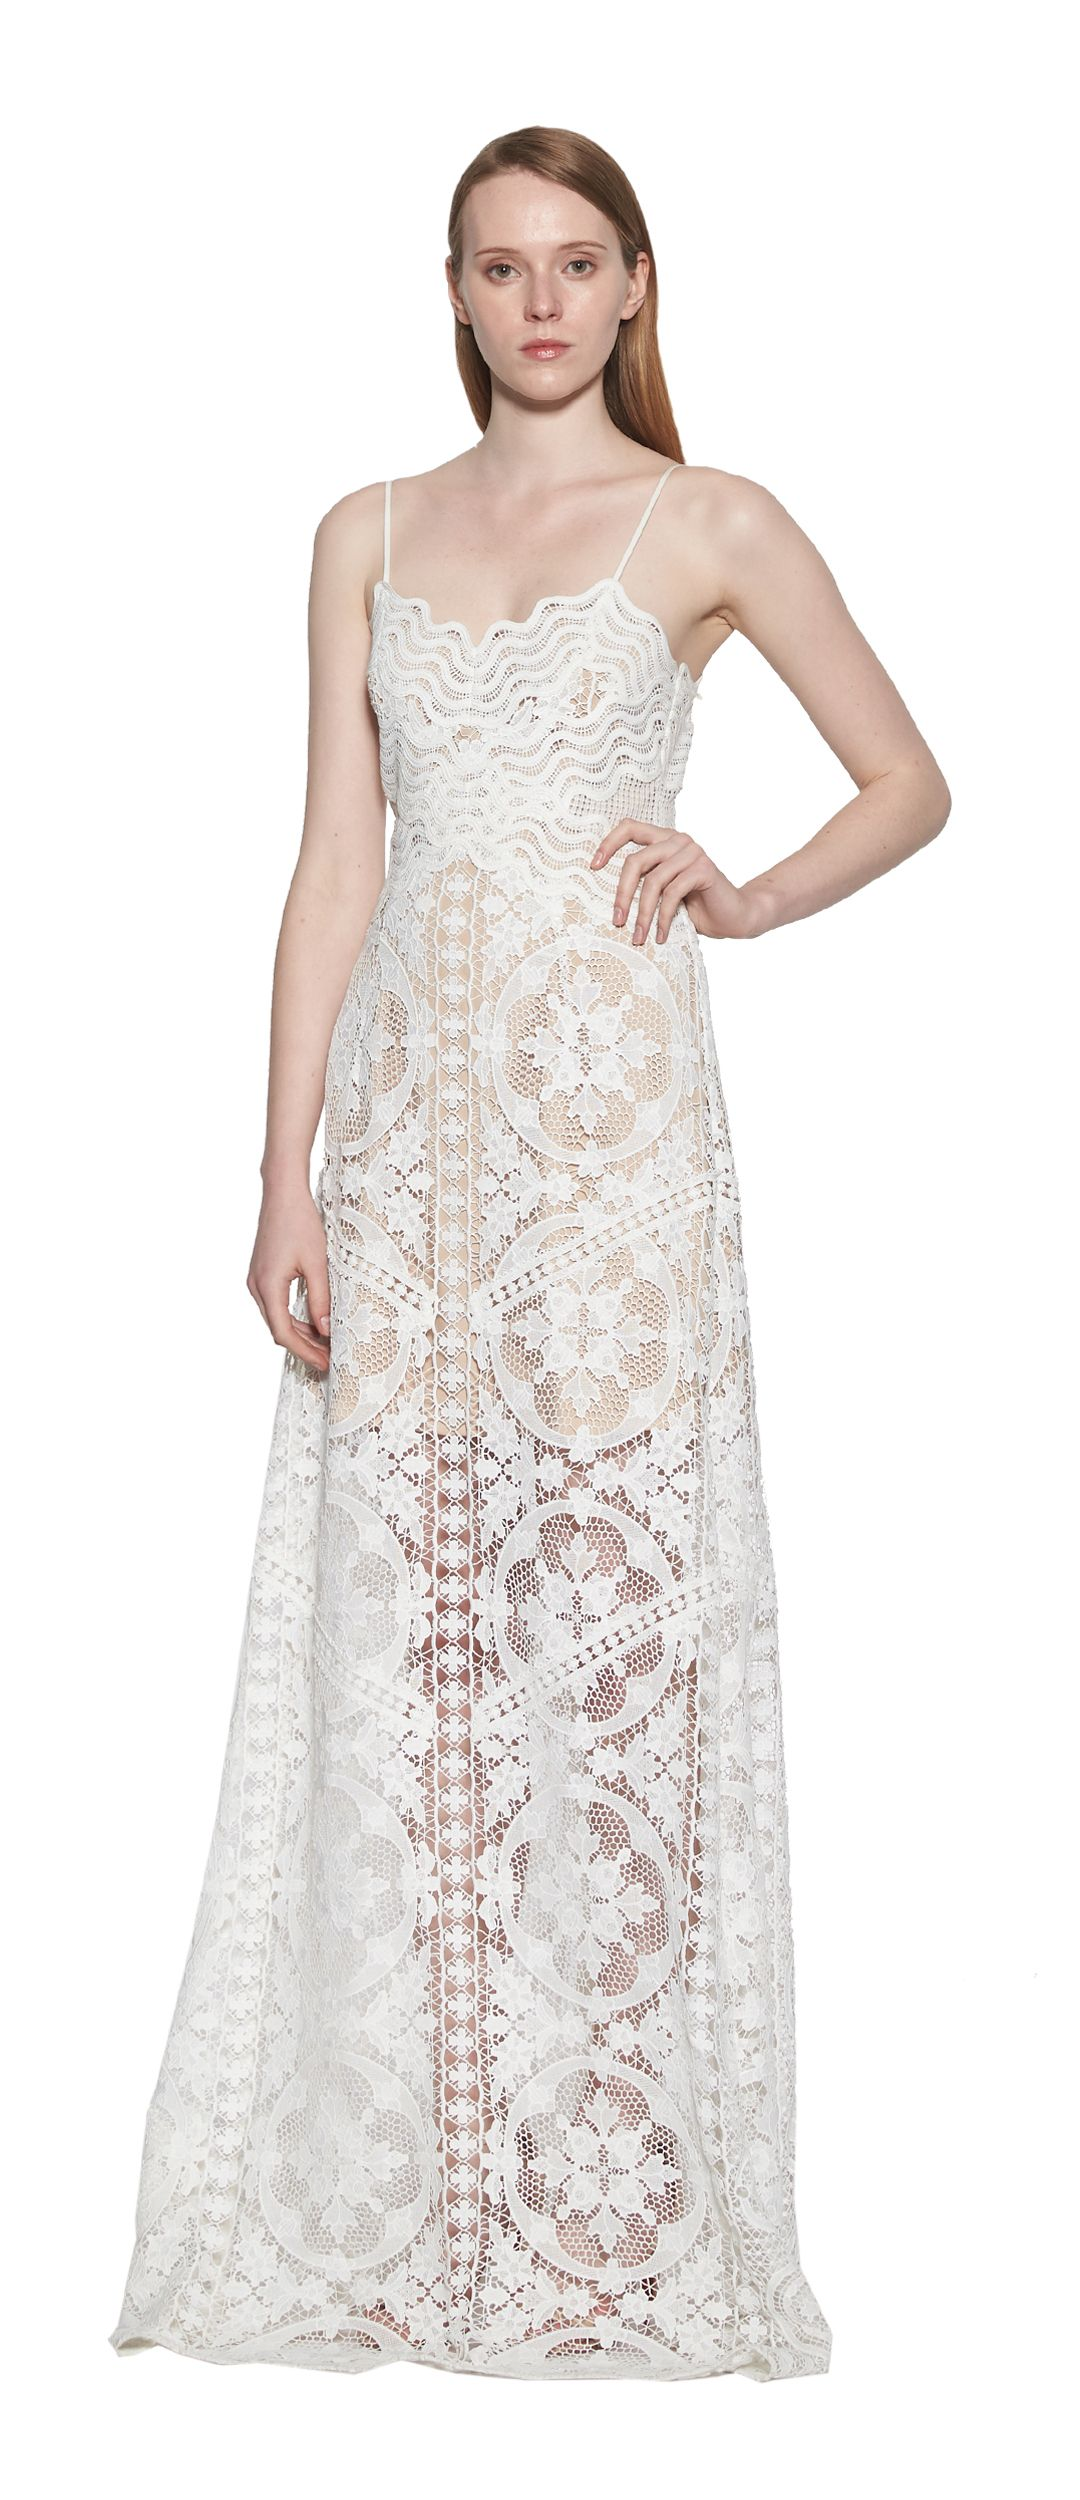 padua embroidered maxi dress aijek shower dresses padua bridal shower shower party